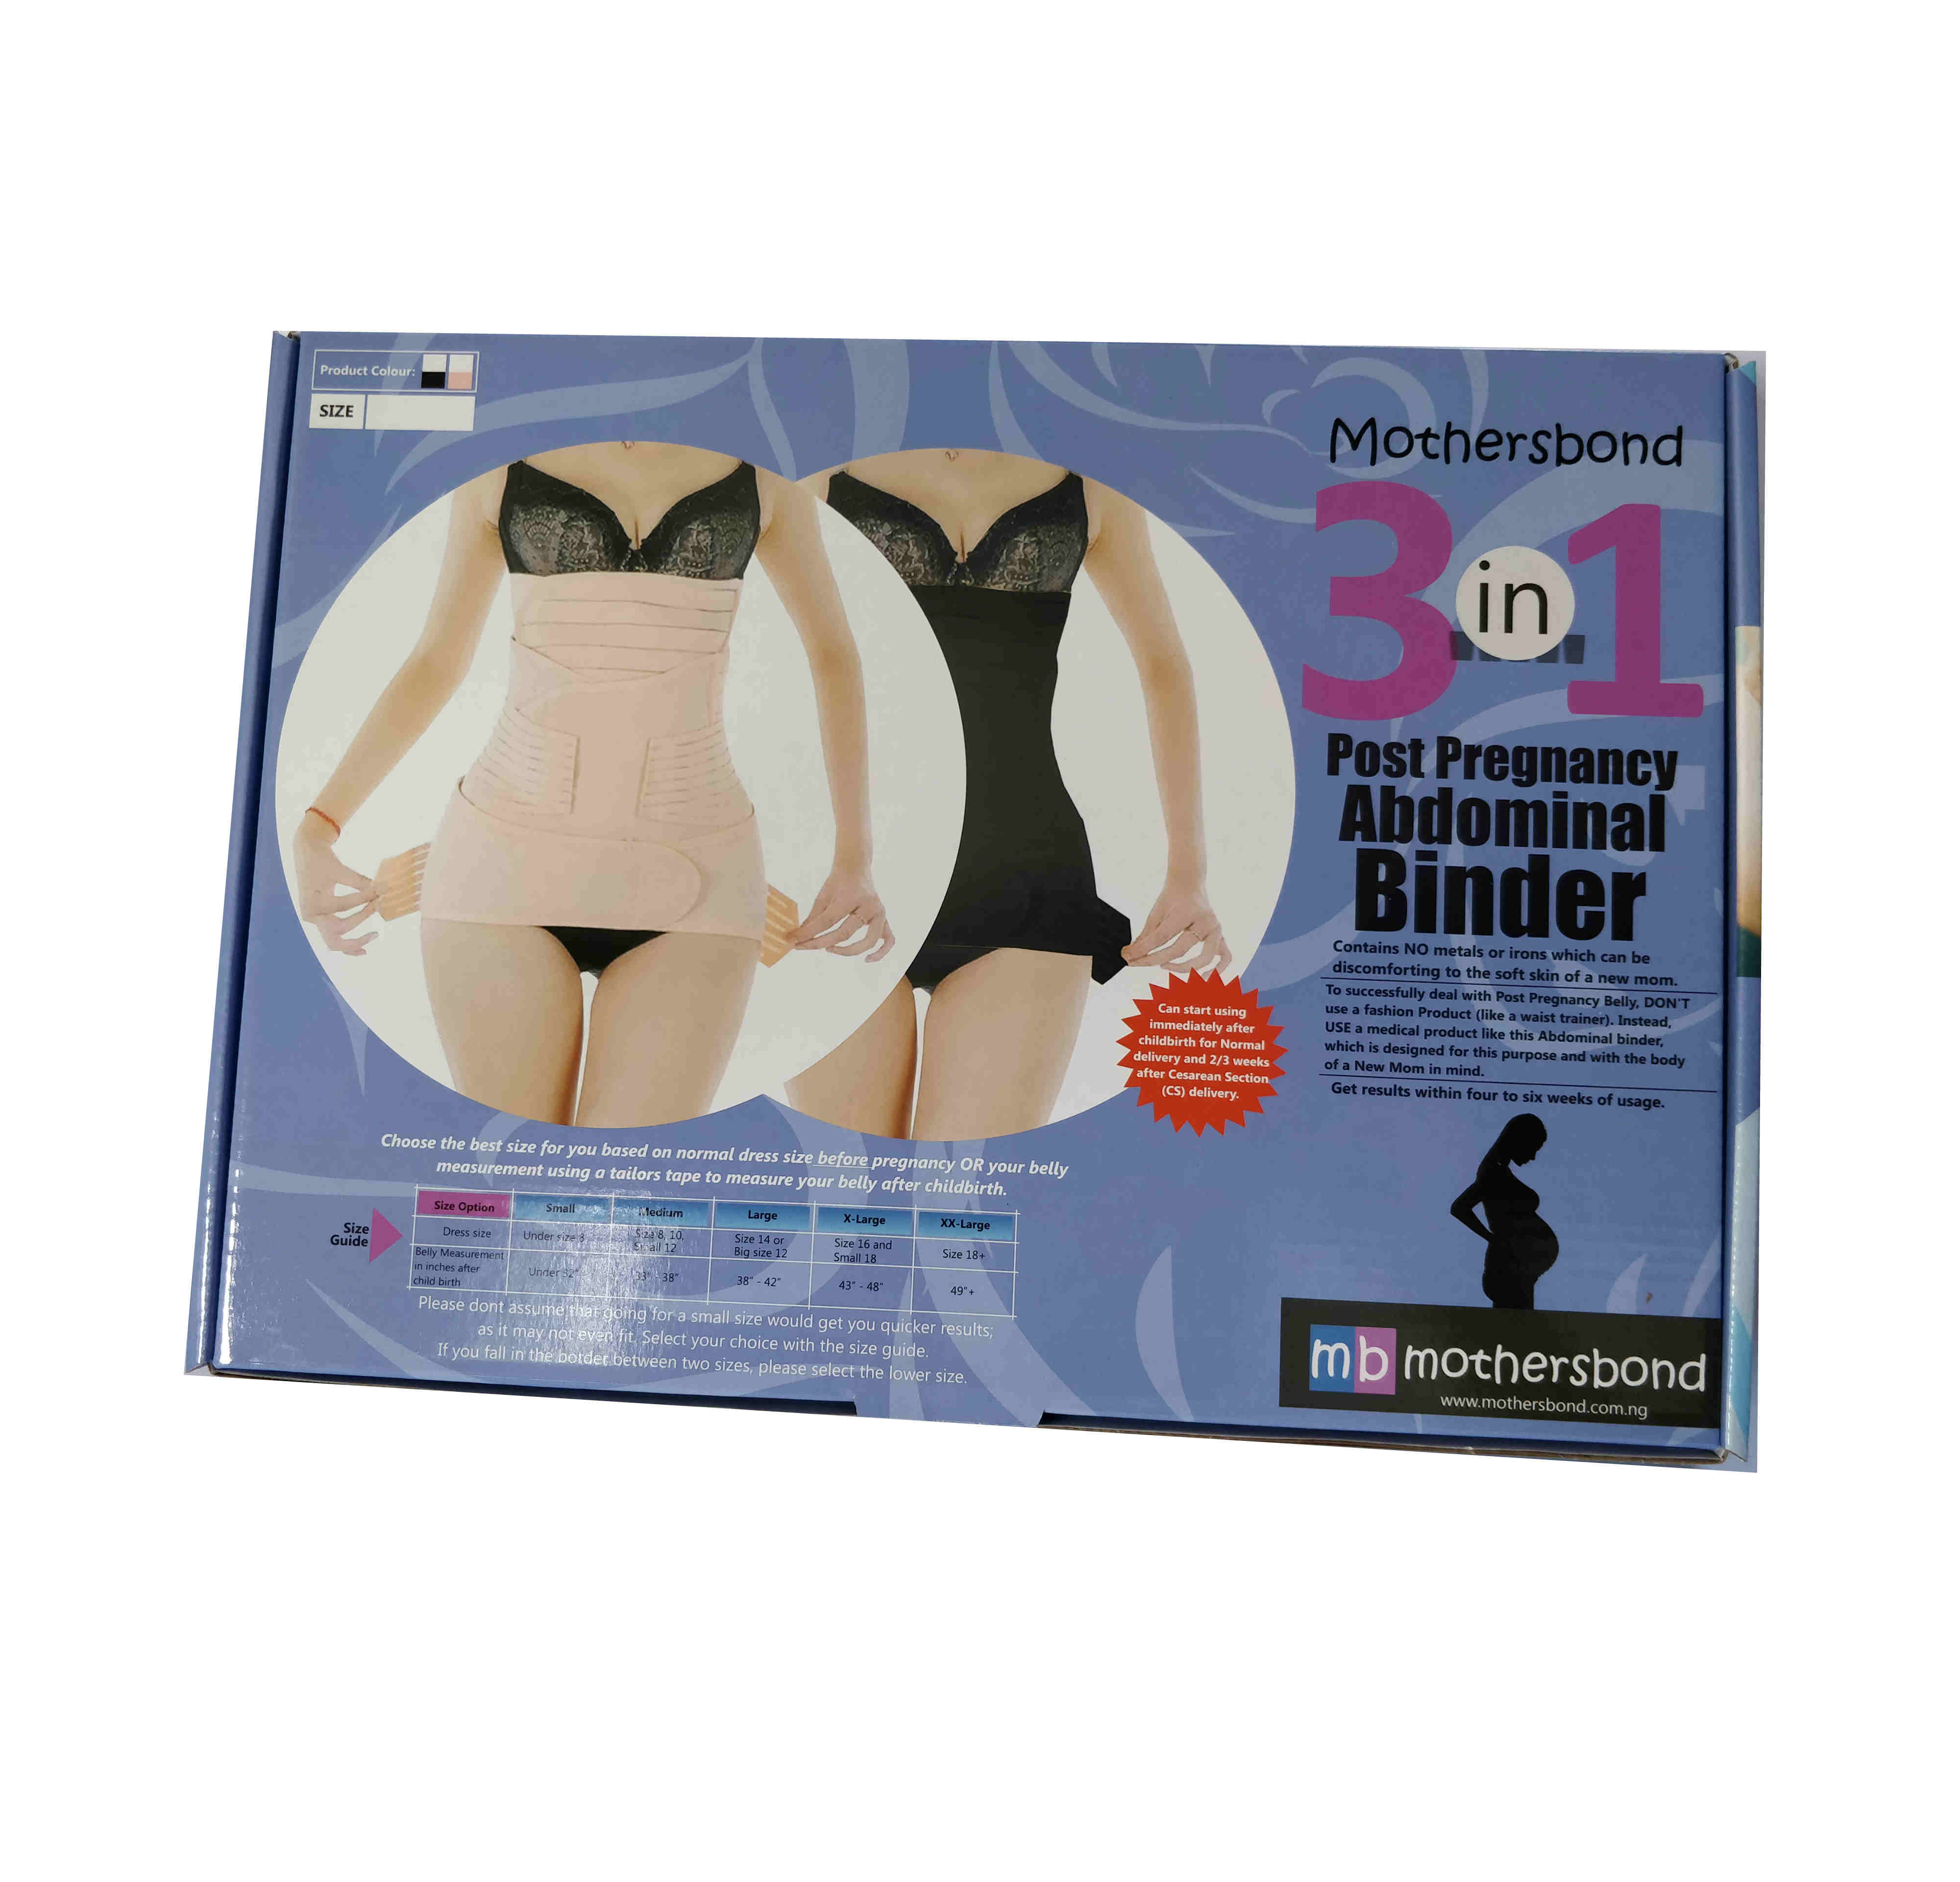 Mothersbond (3 in 1) Post Pregnancy Abdominal Binder  [PRODUCT VIDEO  INCLUDED]